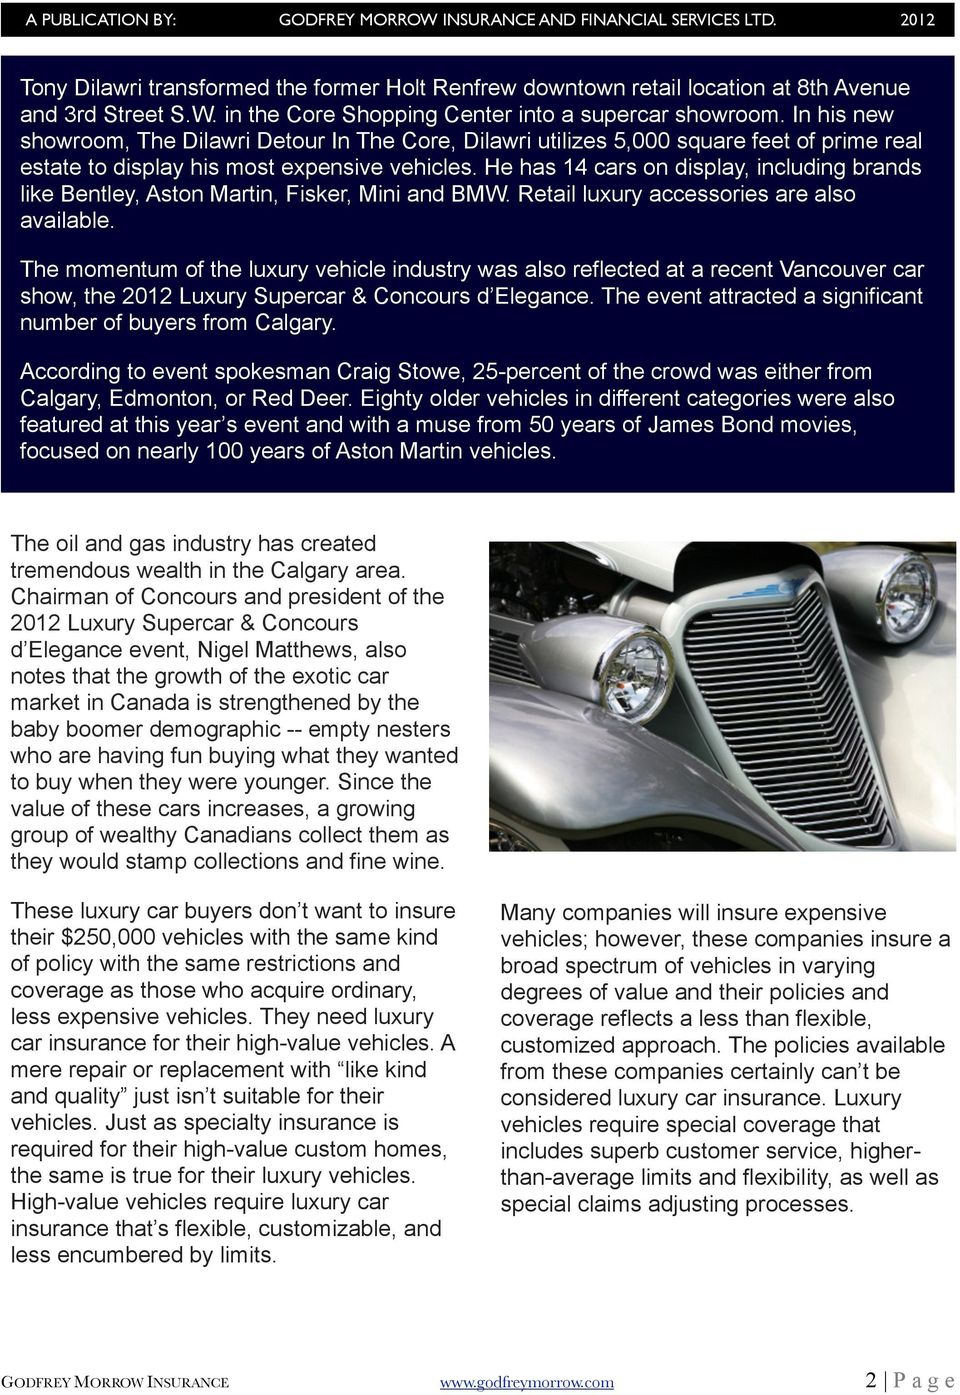 Why High Value Vehicles NEED Luxury Car Insurance PDF - Car show insurance coverage